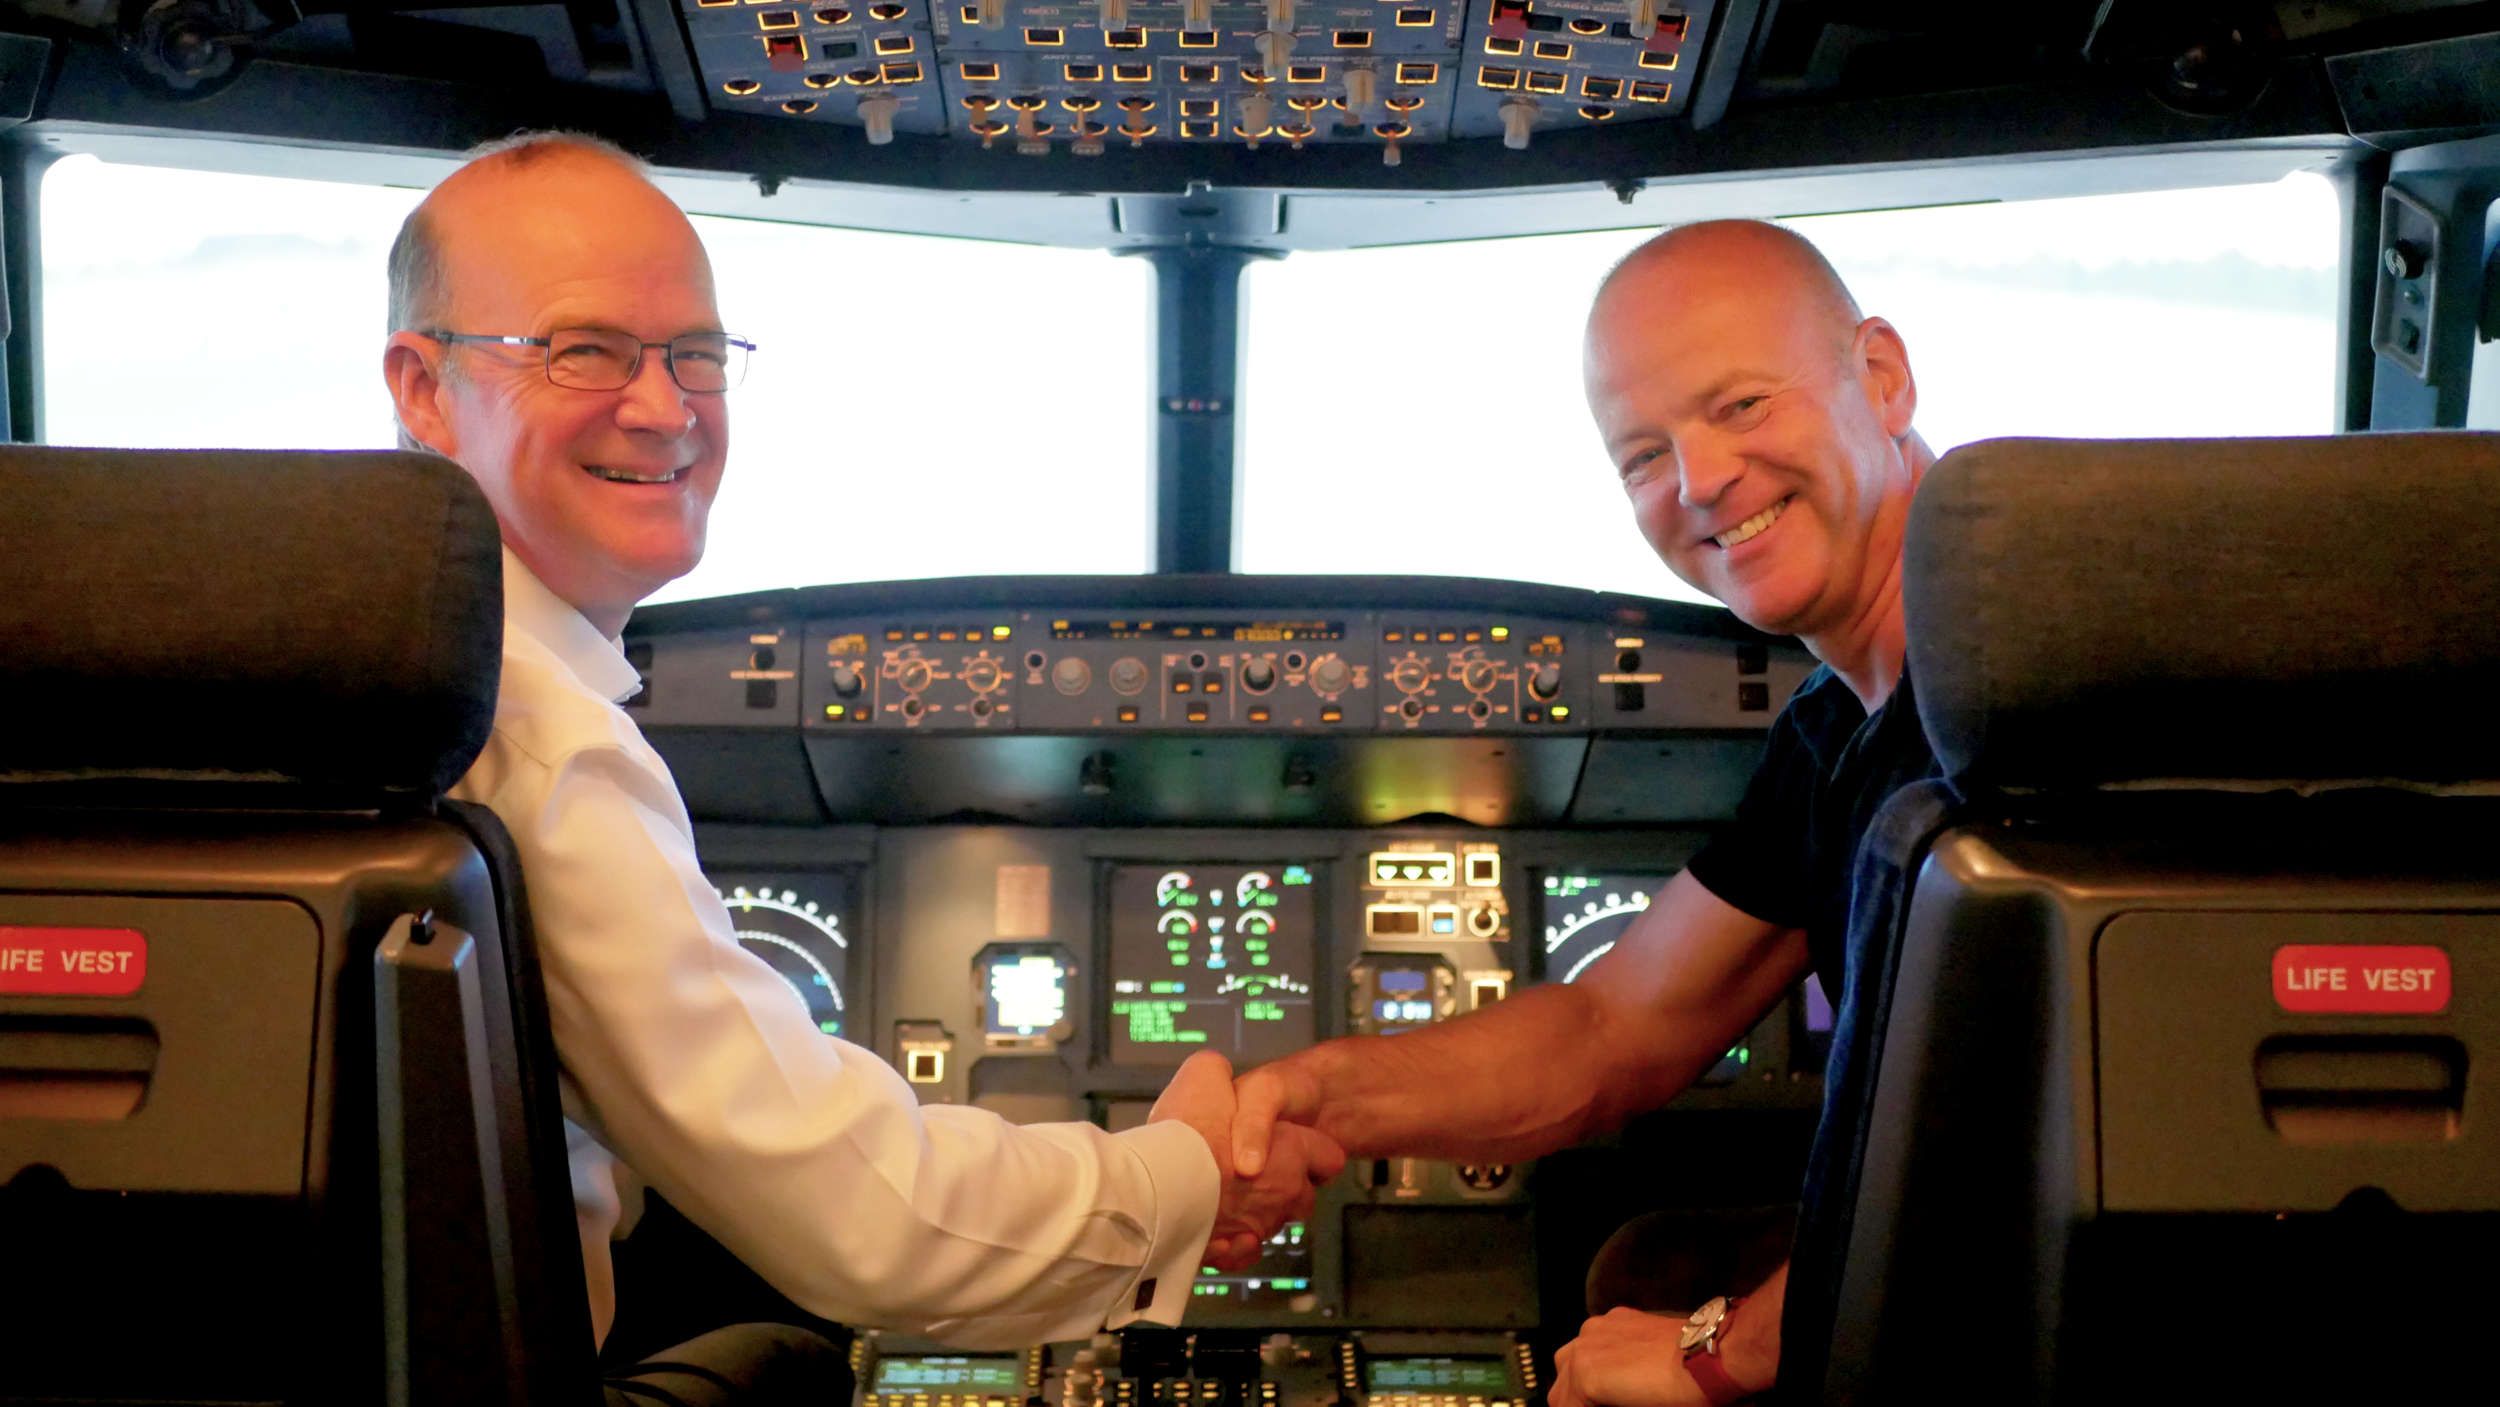 Andy McFarlane (left) of Leading Edge Aviation and Anthony Petteford (right) of VA Airline Training in the Airbus A320 simulator being used for the very first A320 APS MCC course.